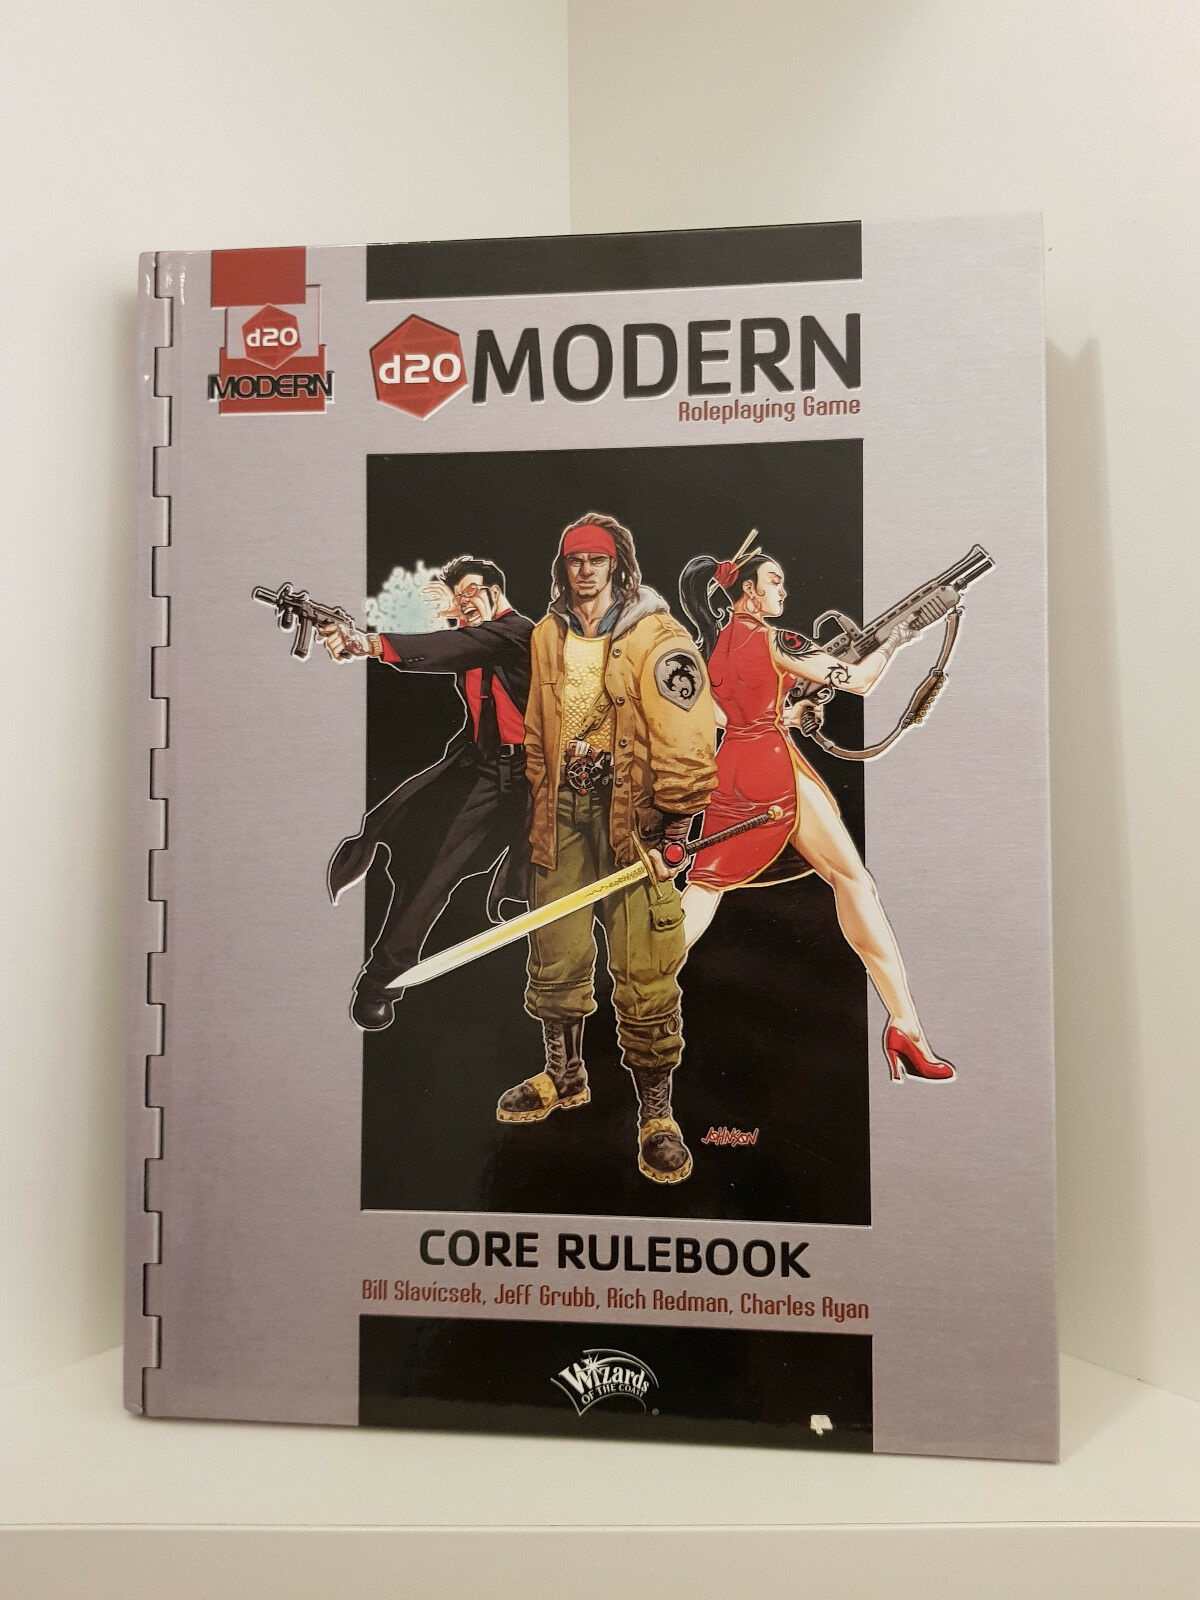 D20 Modern, Core Rulebook, hardcover, D20 system, RPG